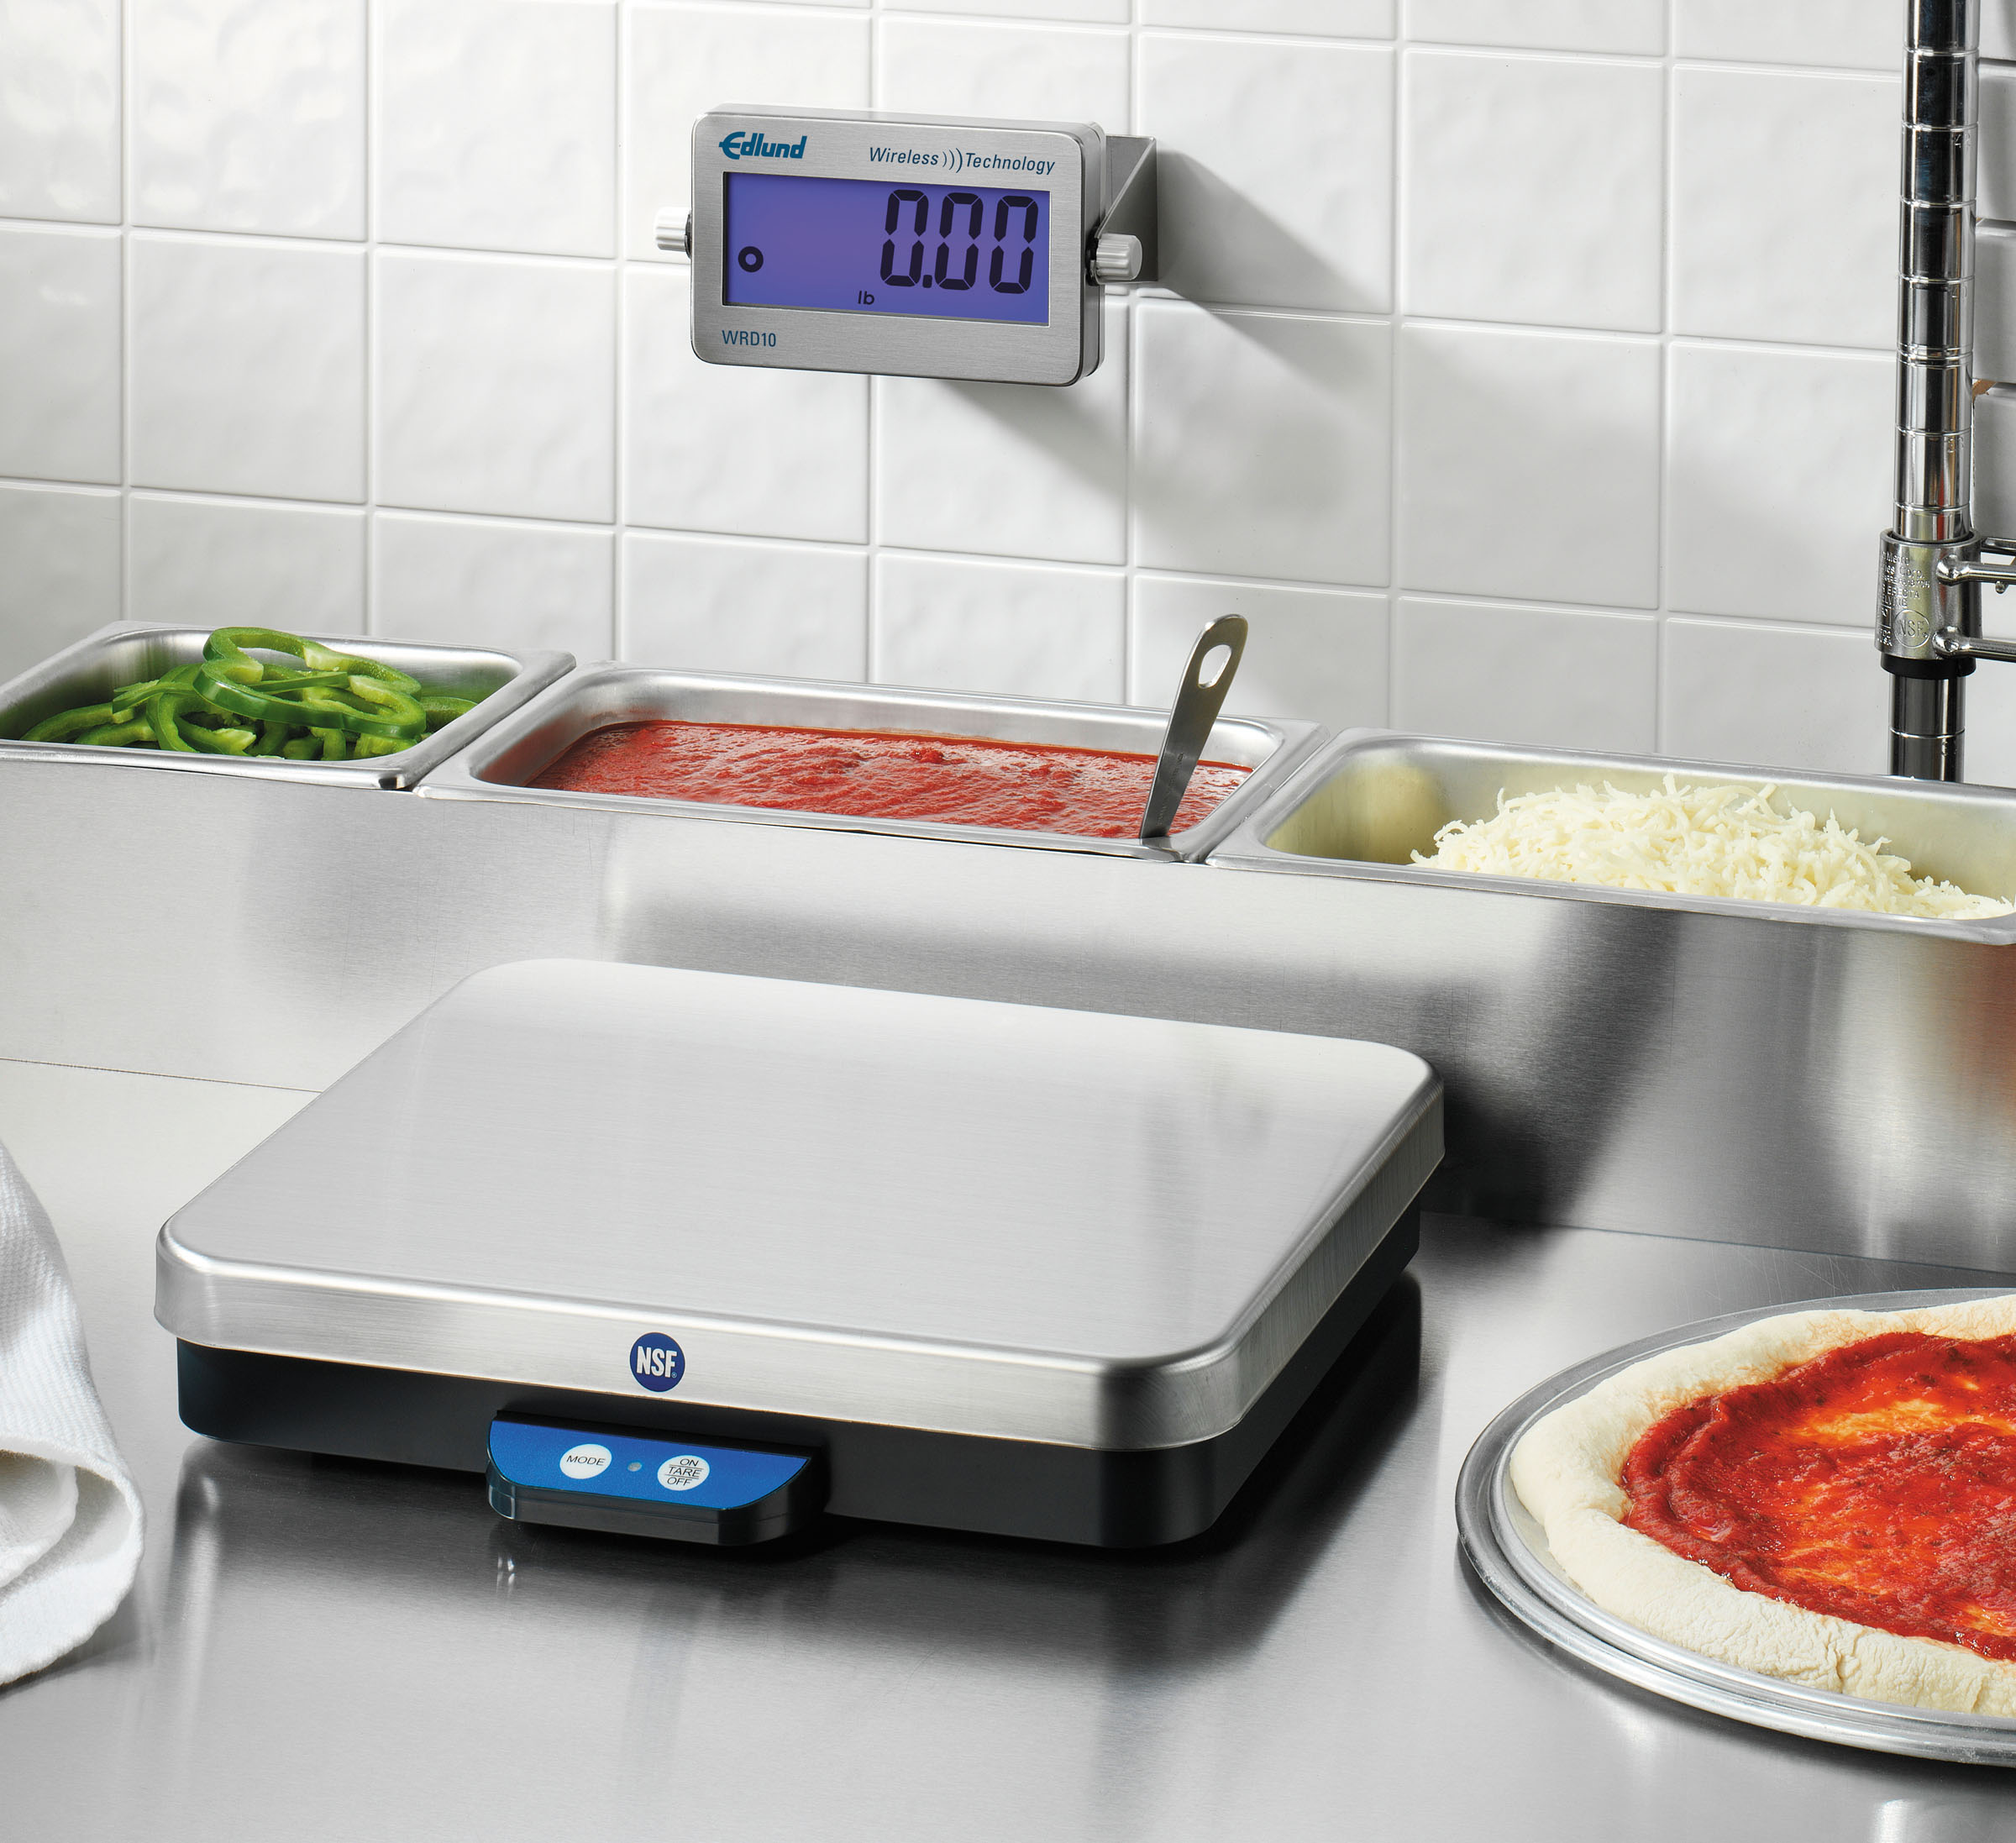 edlund wireless technology pizza specialty scales